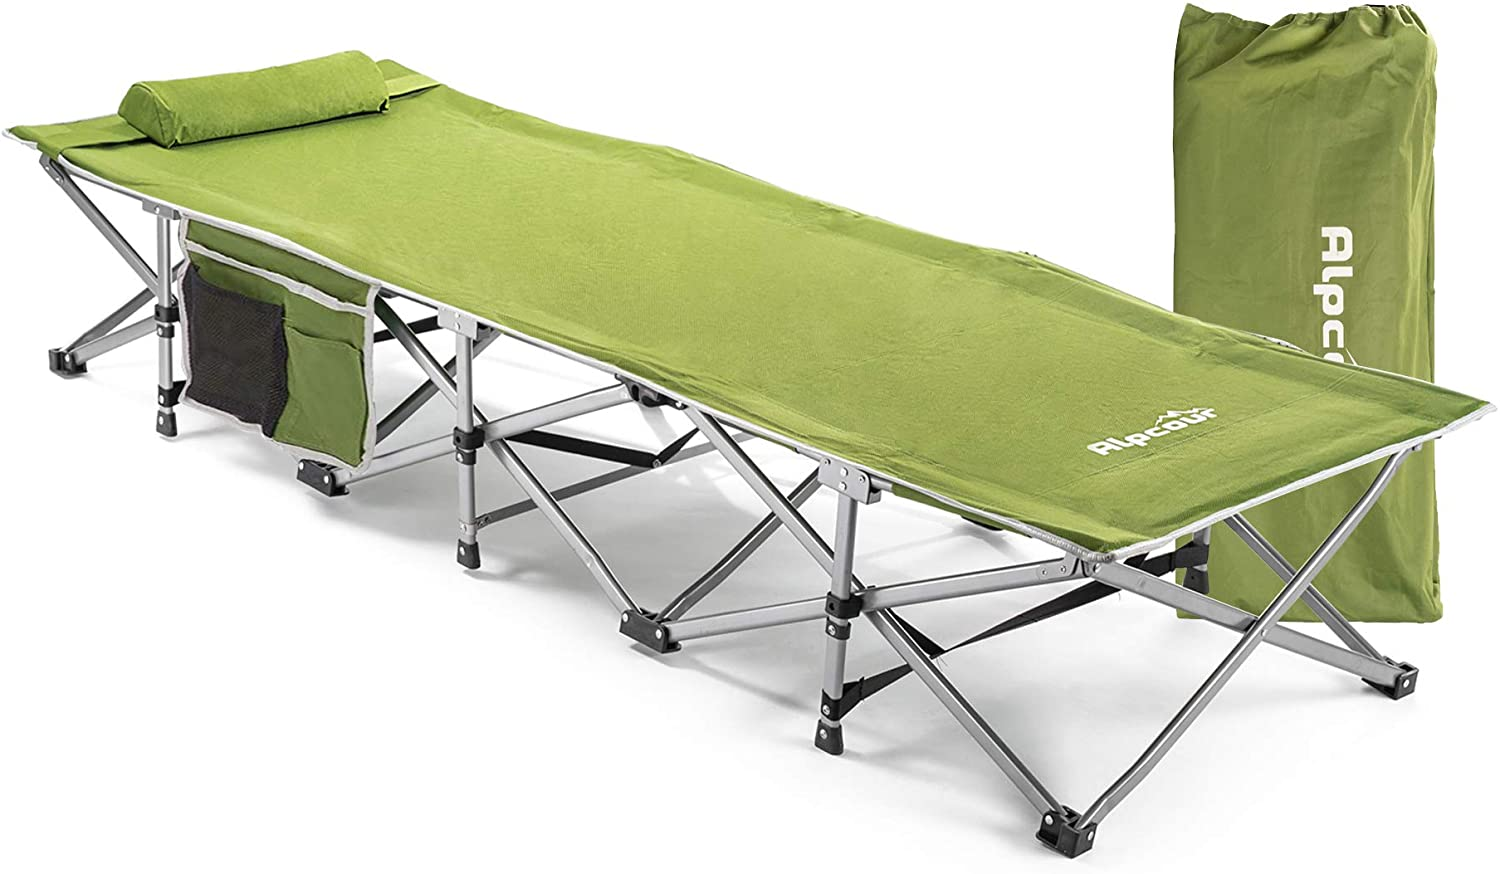 - Amazon.com: Alpcour Folding Camping Cot – Extra Strong Single Person  Small-Collapsing Bed In A Bag W/Pillow For Indoor & Outdoor Use – Deluxe  Comfortable Extra Heavy Duty Design Holds Adults & Kids